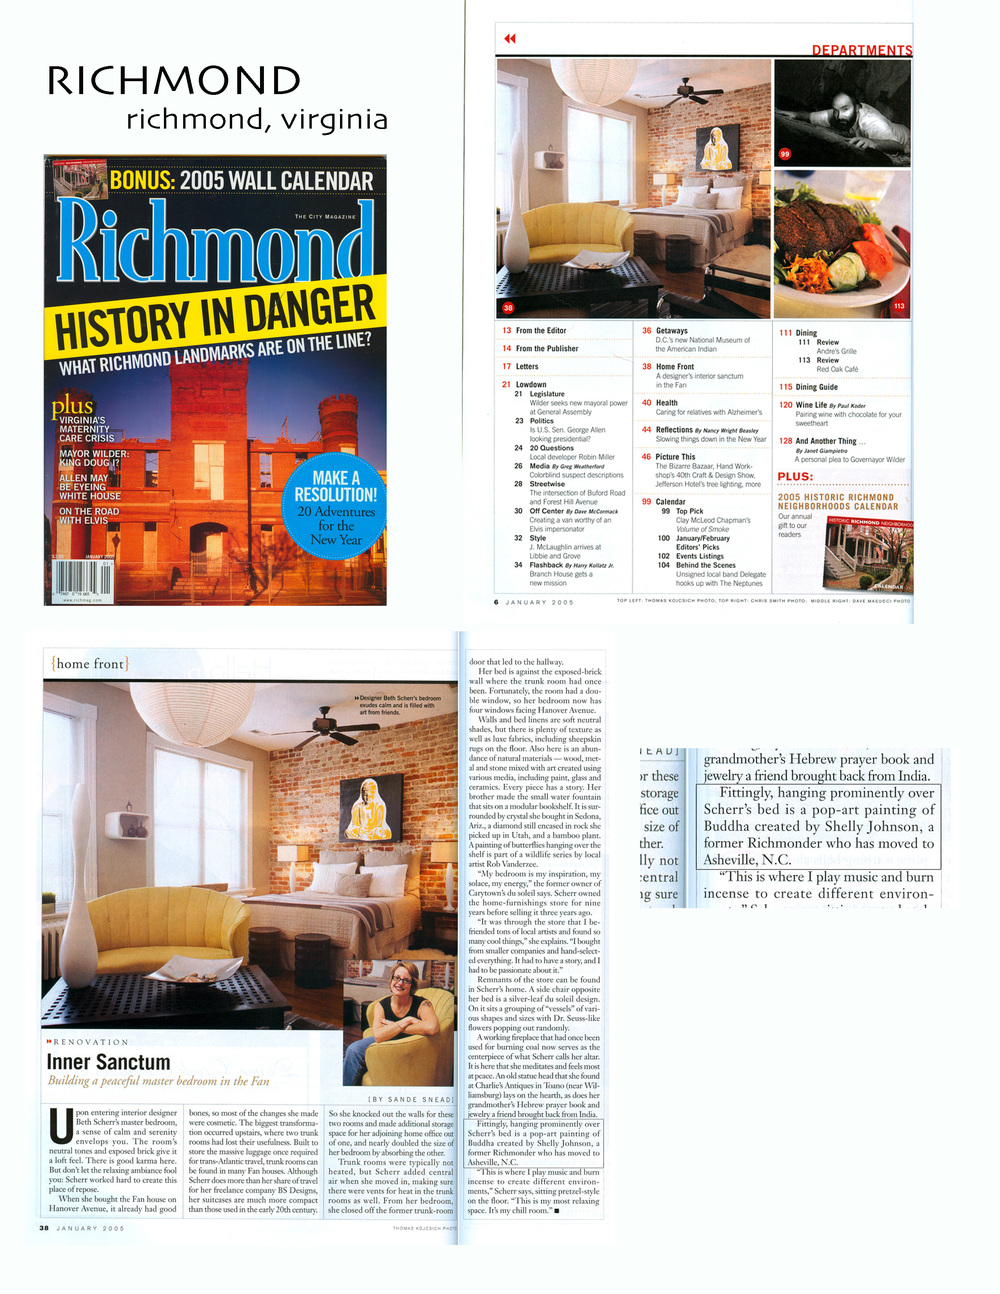 RICHMOND MAGAZINE.jpg